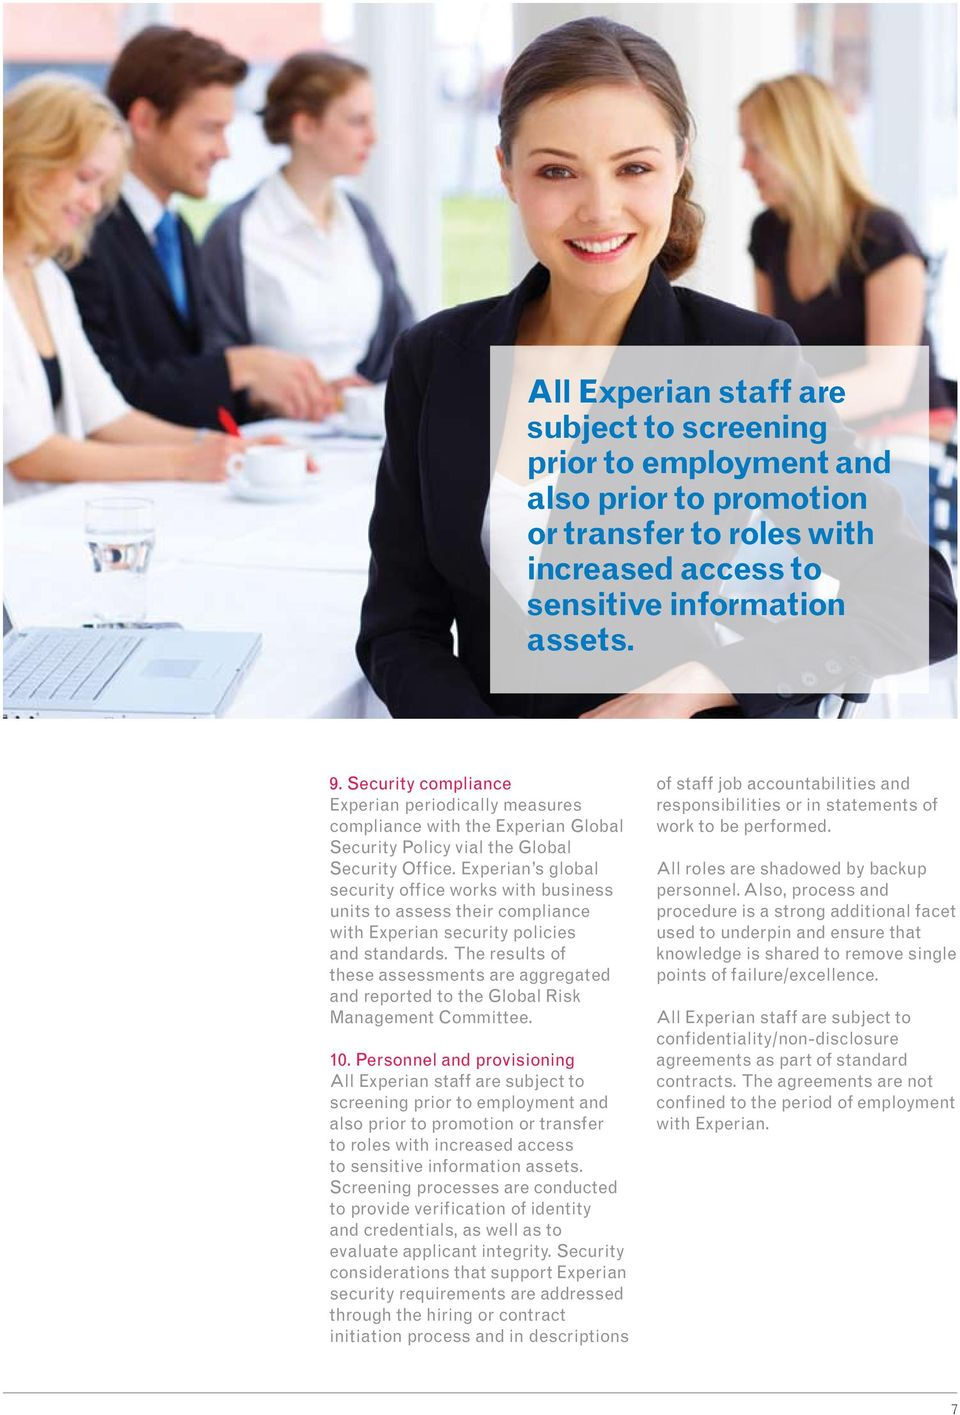 Experian s global security office works with business units to assess their compliance with Experian security policies and standards.